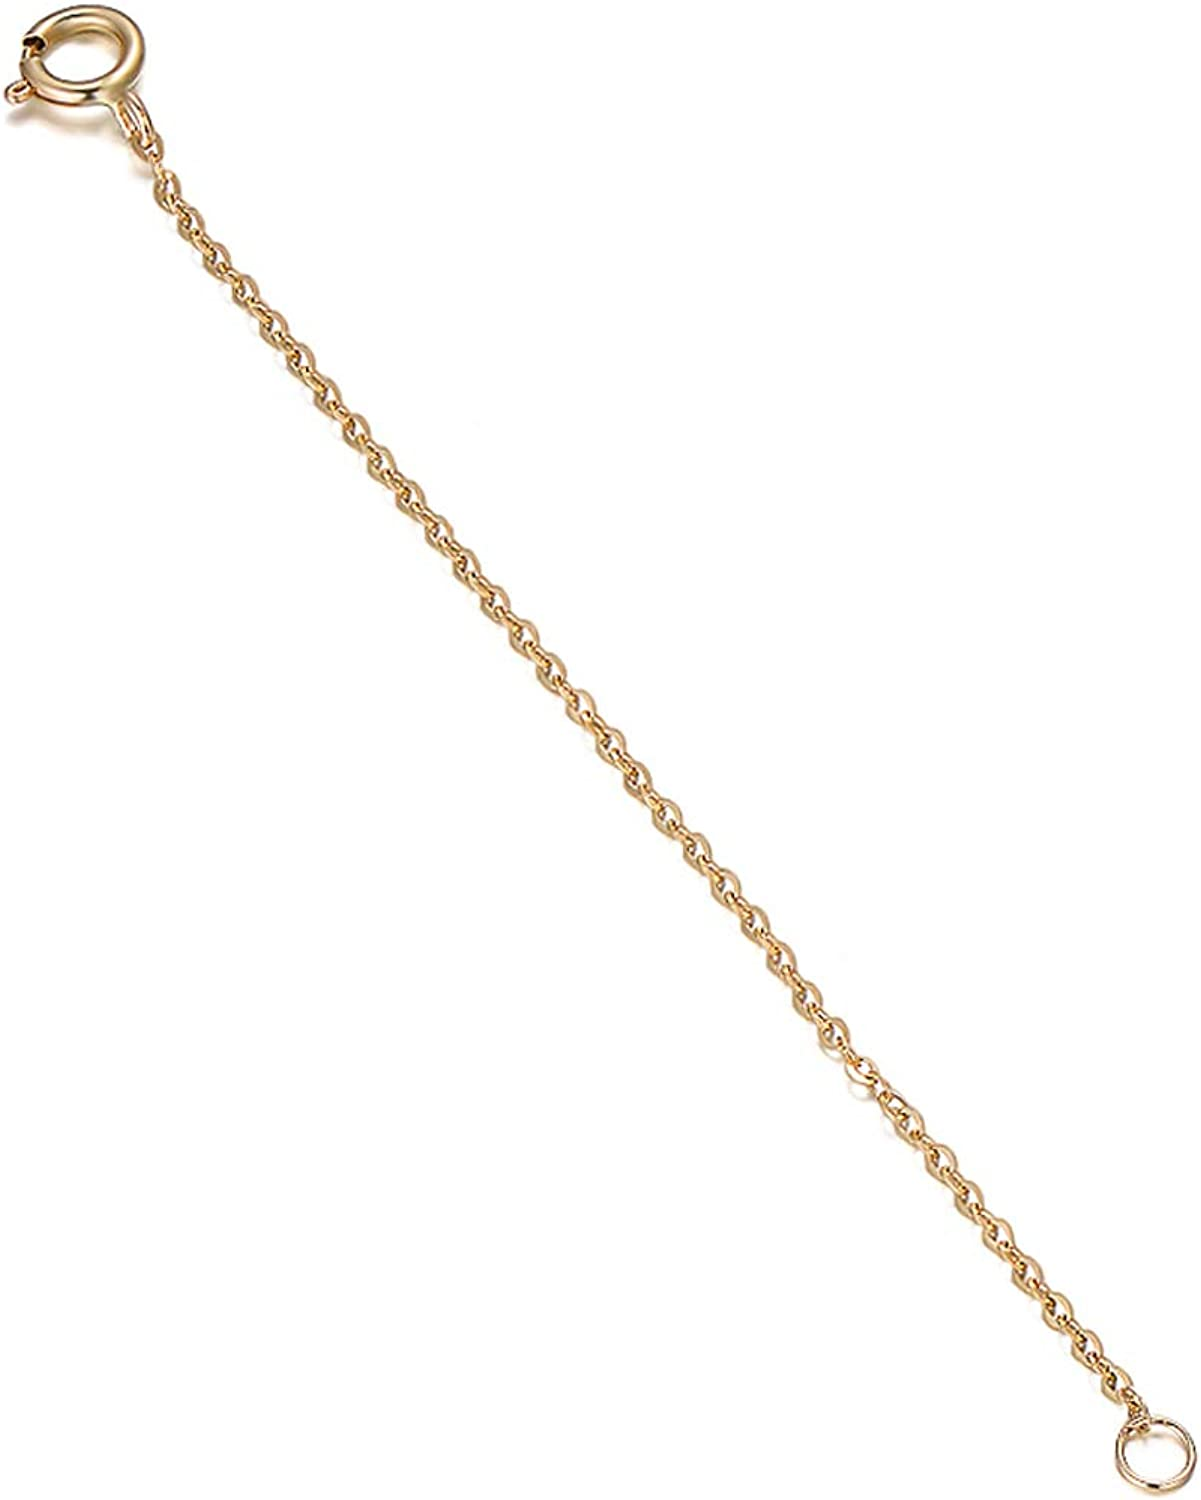 9ct Gold Extender Safety Chain For Necklace//Bracelet Anklet Extension 2 Inches